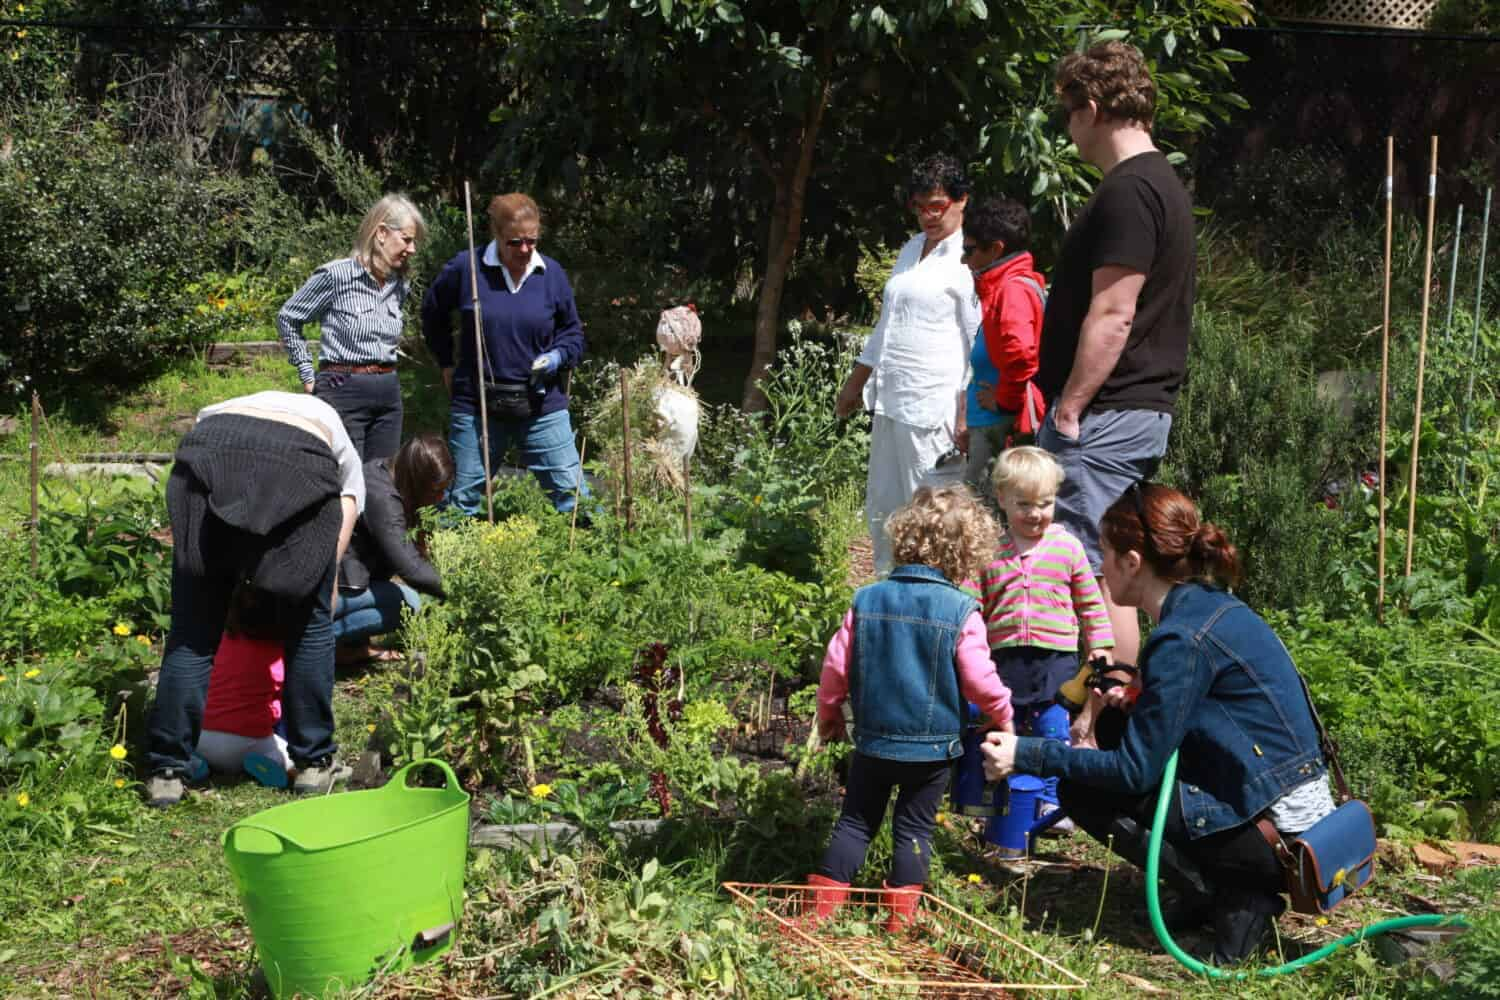 kids and adults working in a garden